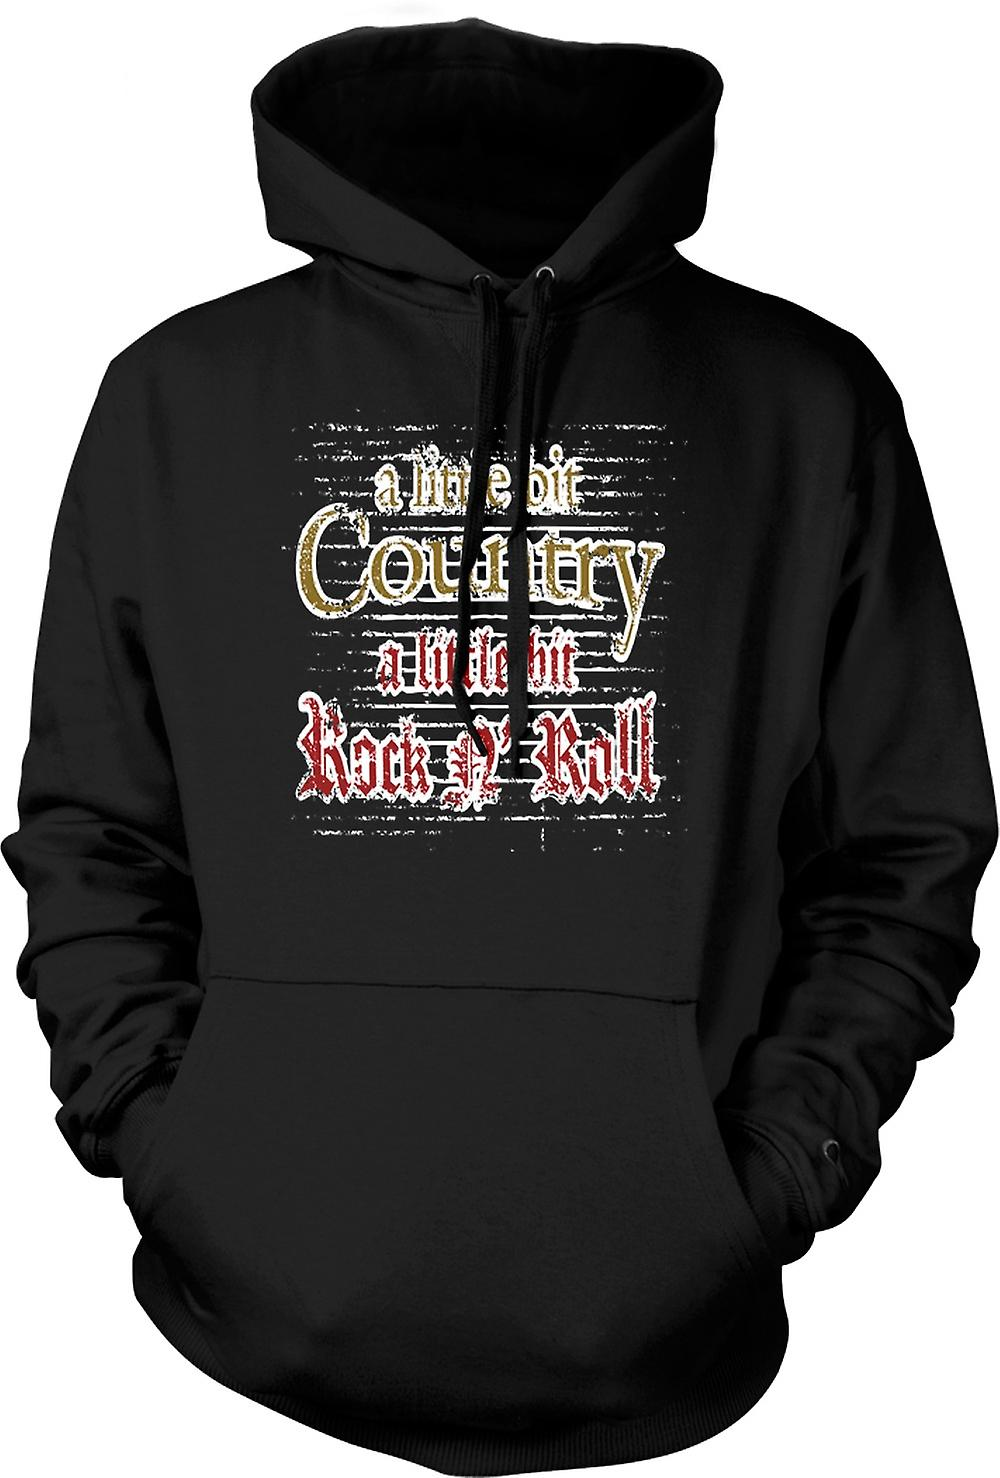 Mens Hoodie - Little Bit Of Country Rock n Roll